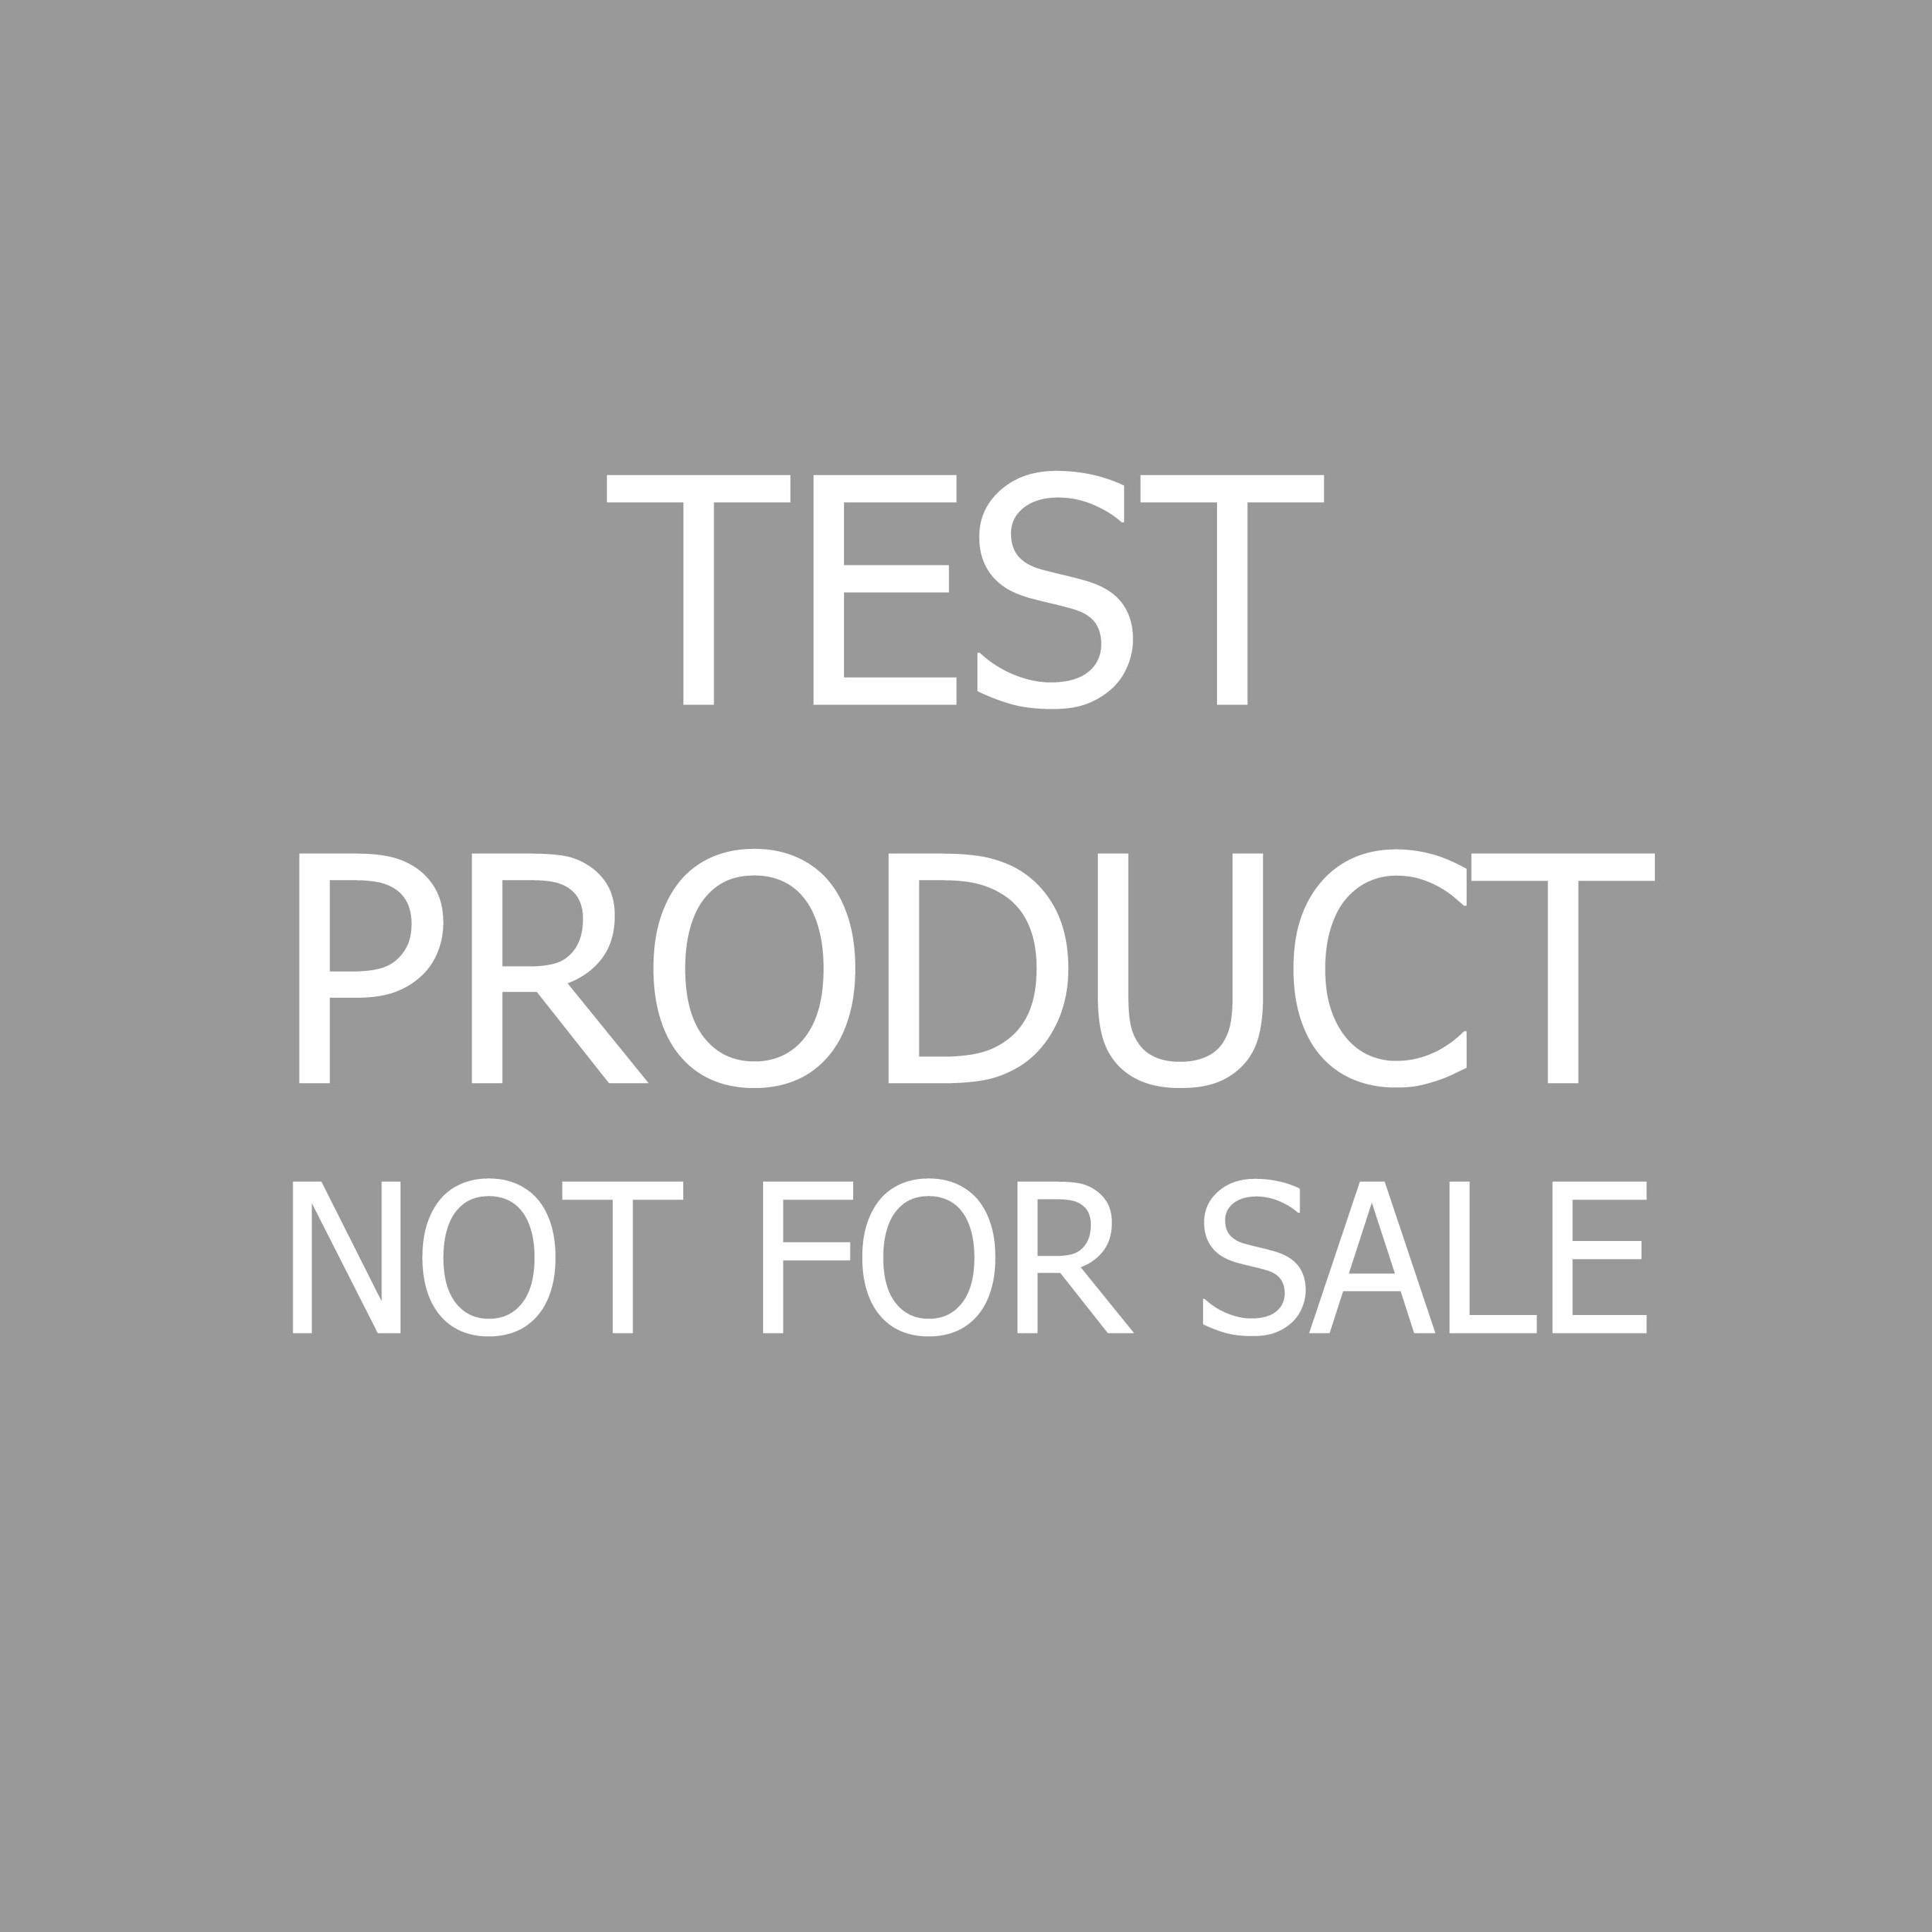 test-product-not-for-sale.jpg